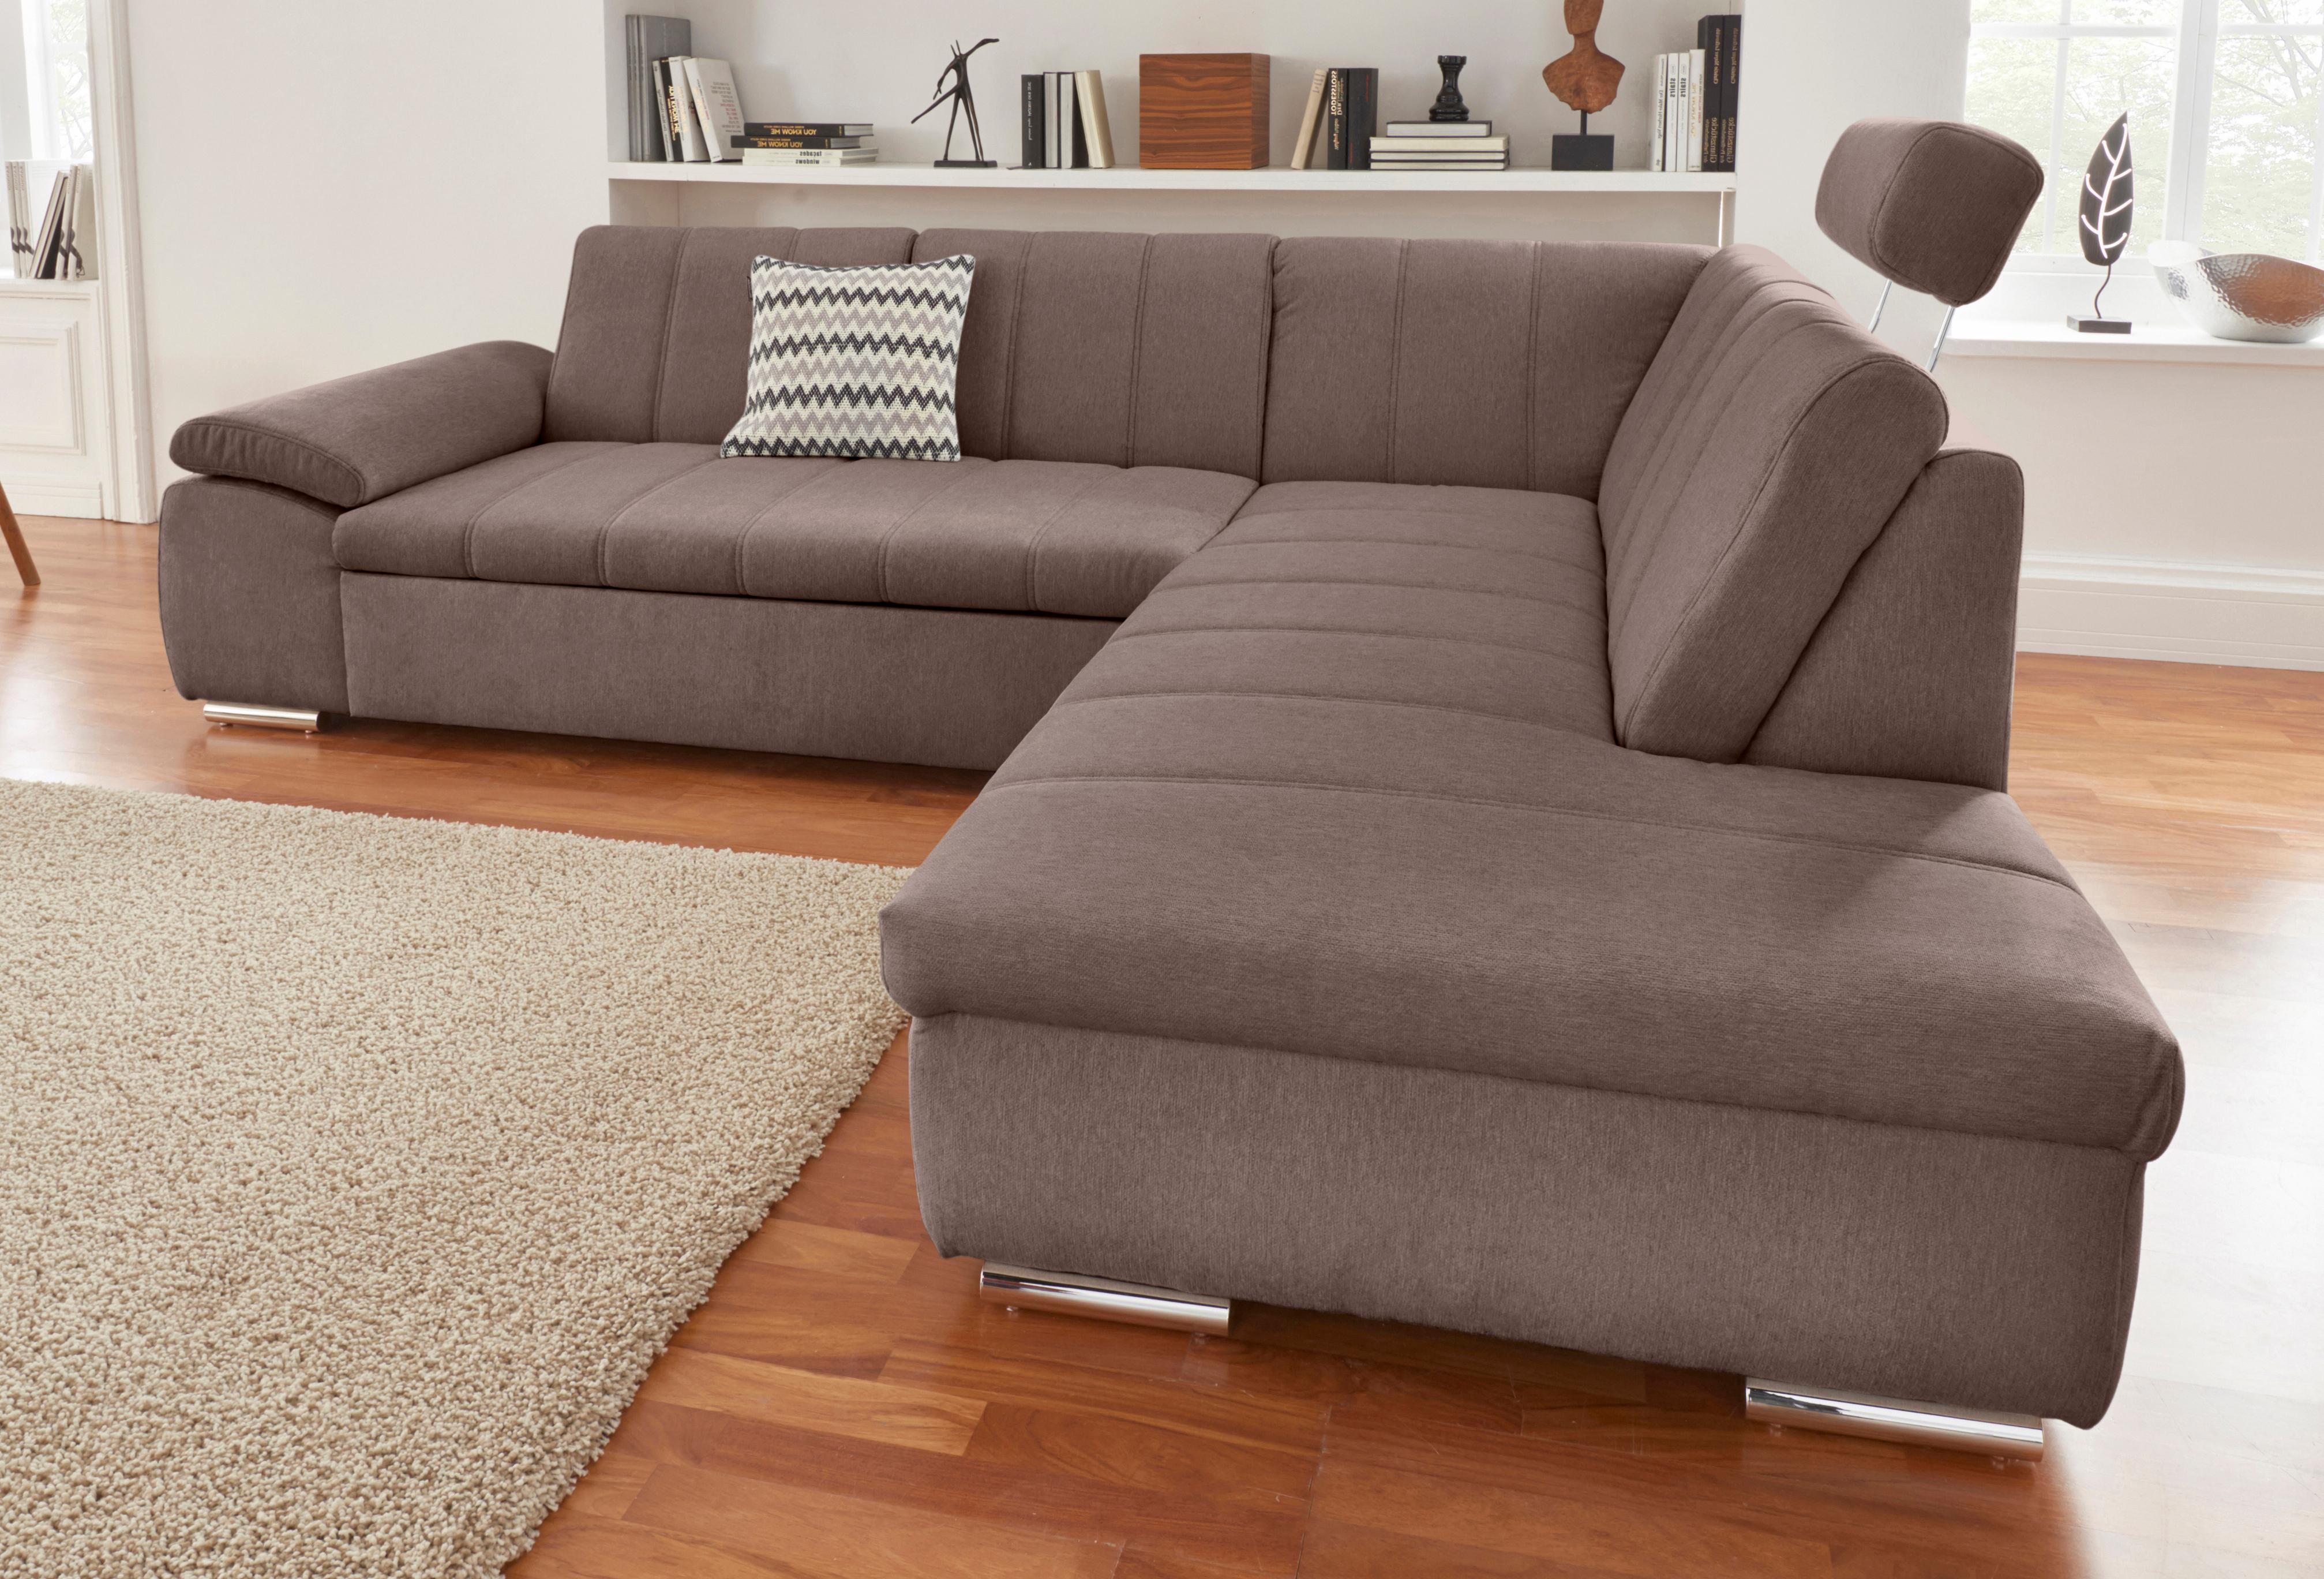 DOMO collection Ecksofa | Wohnzimmer > Sofas & Couches > Ecksofas & Eckcouches | Braun | Chenille | Domo Collection